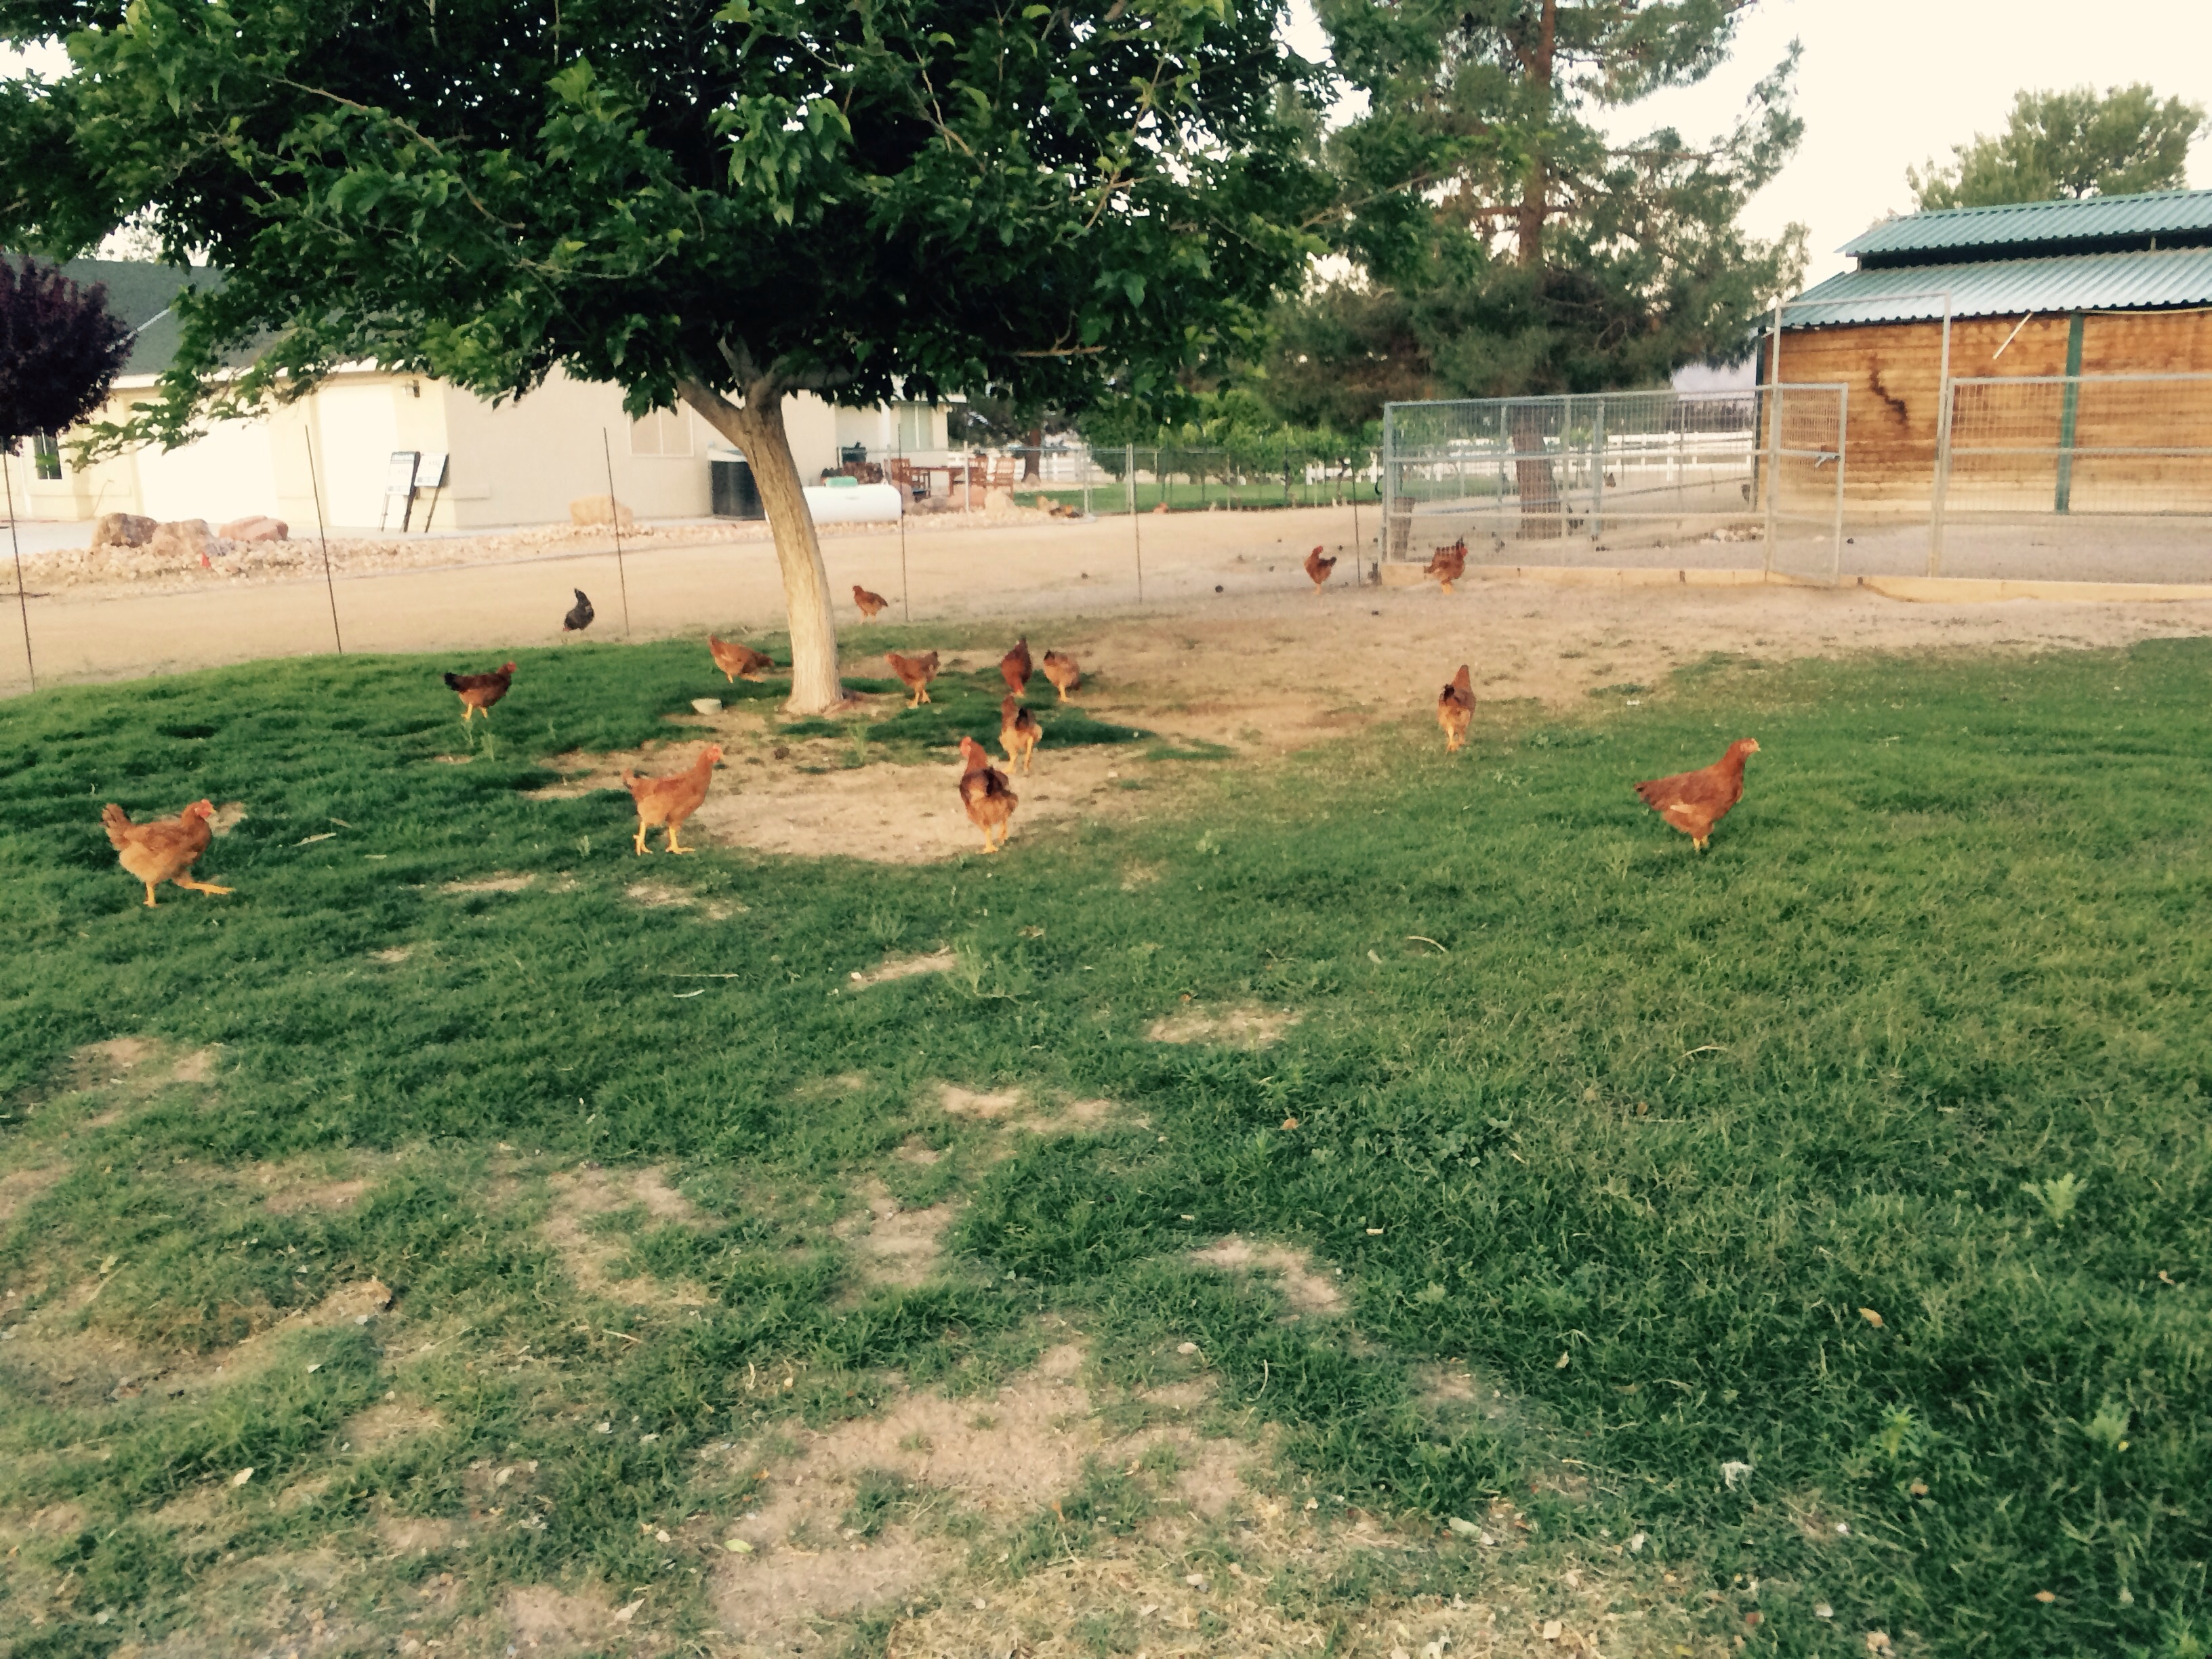 The chickens are growing loving the pasture